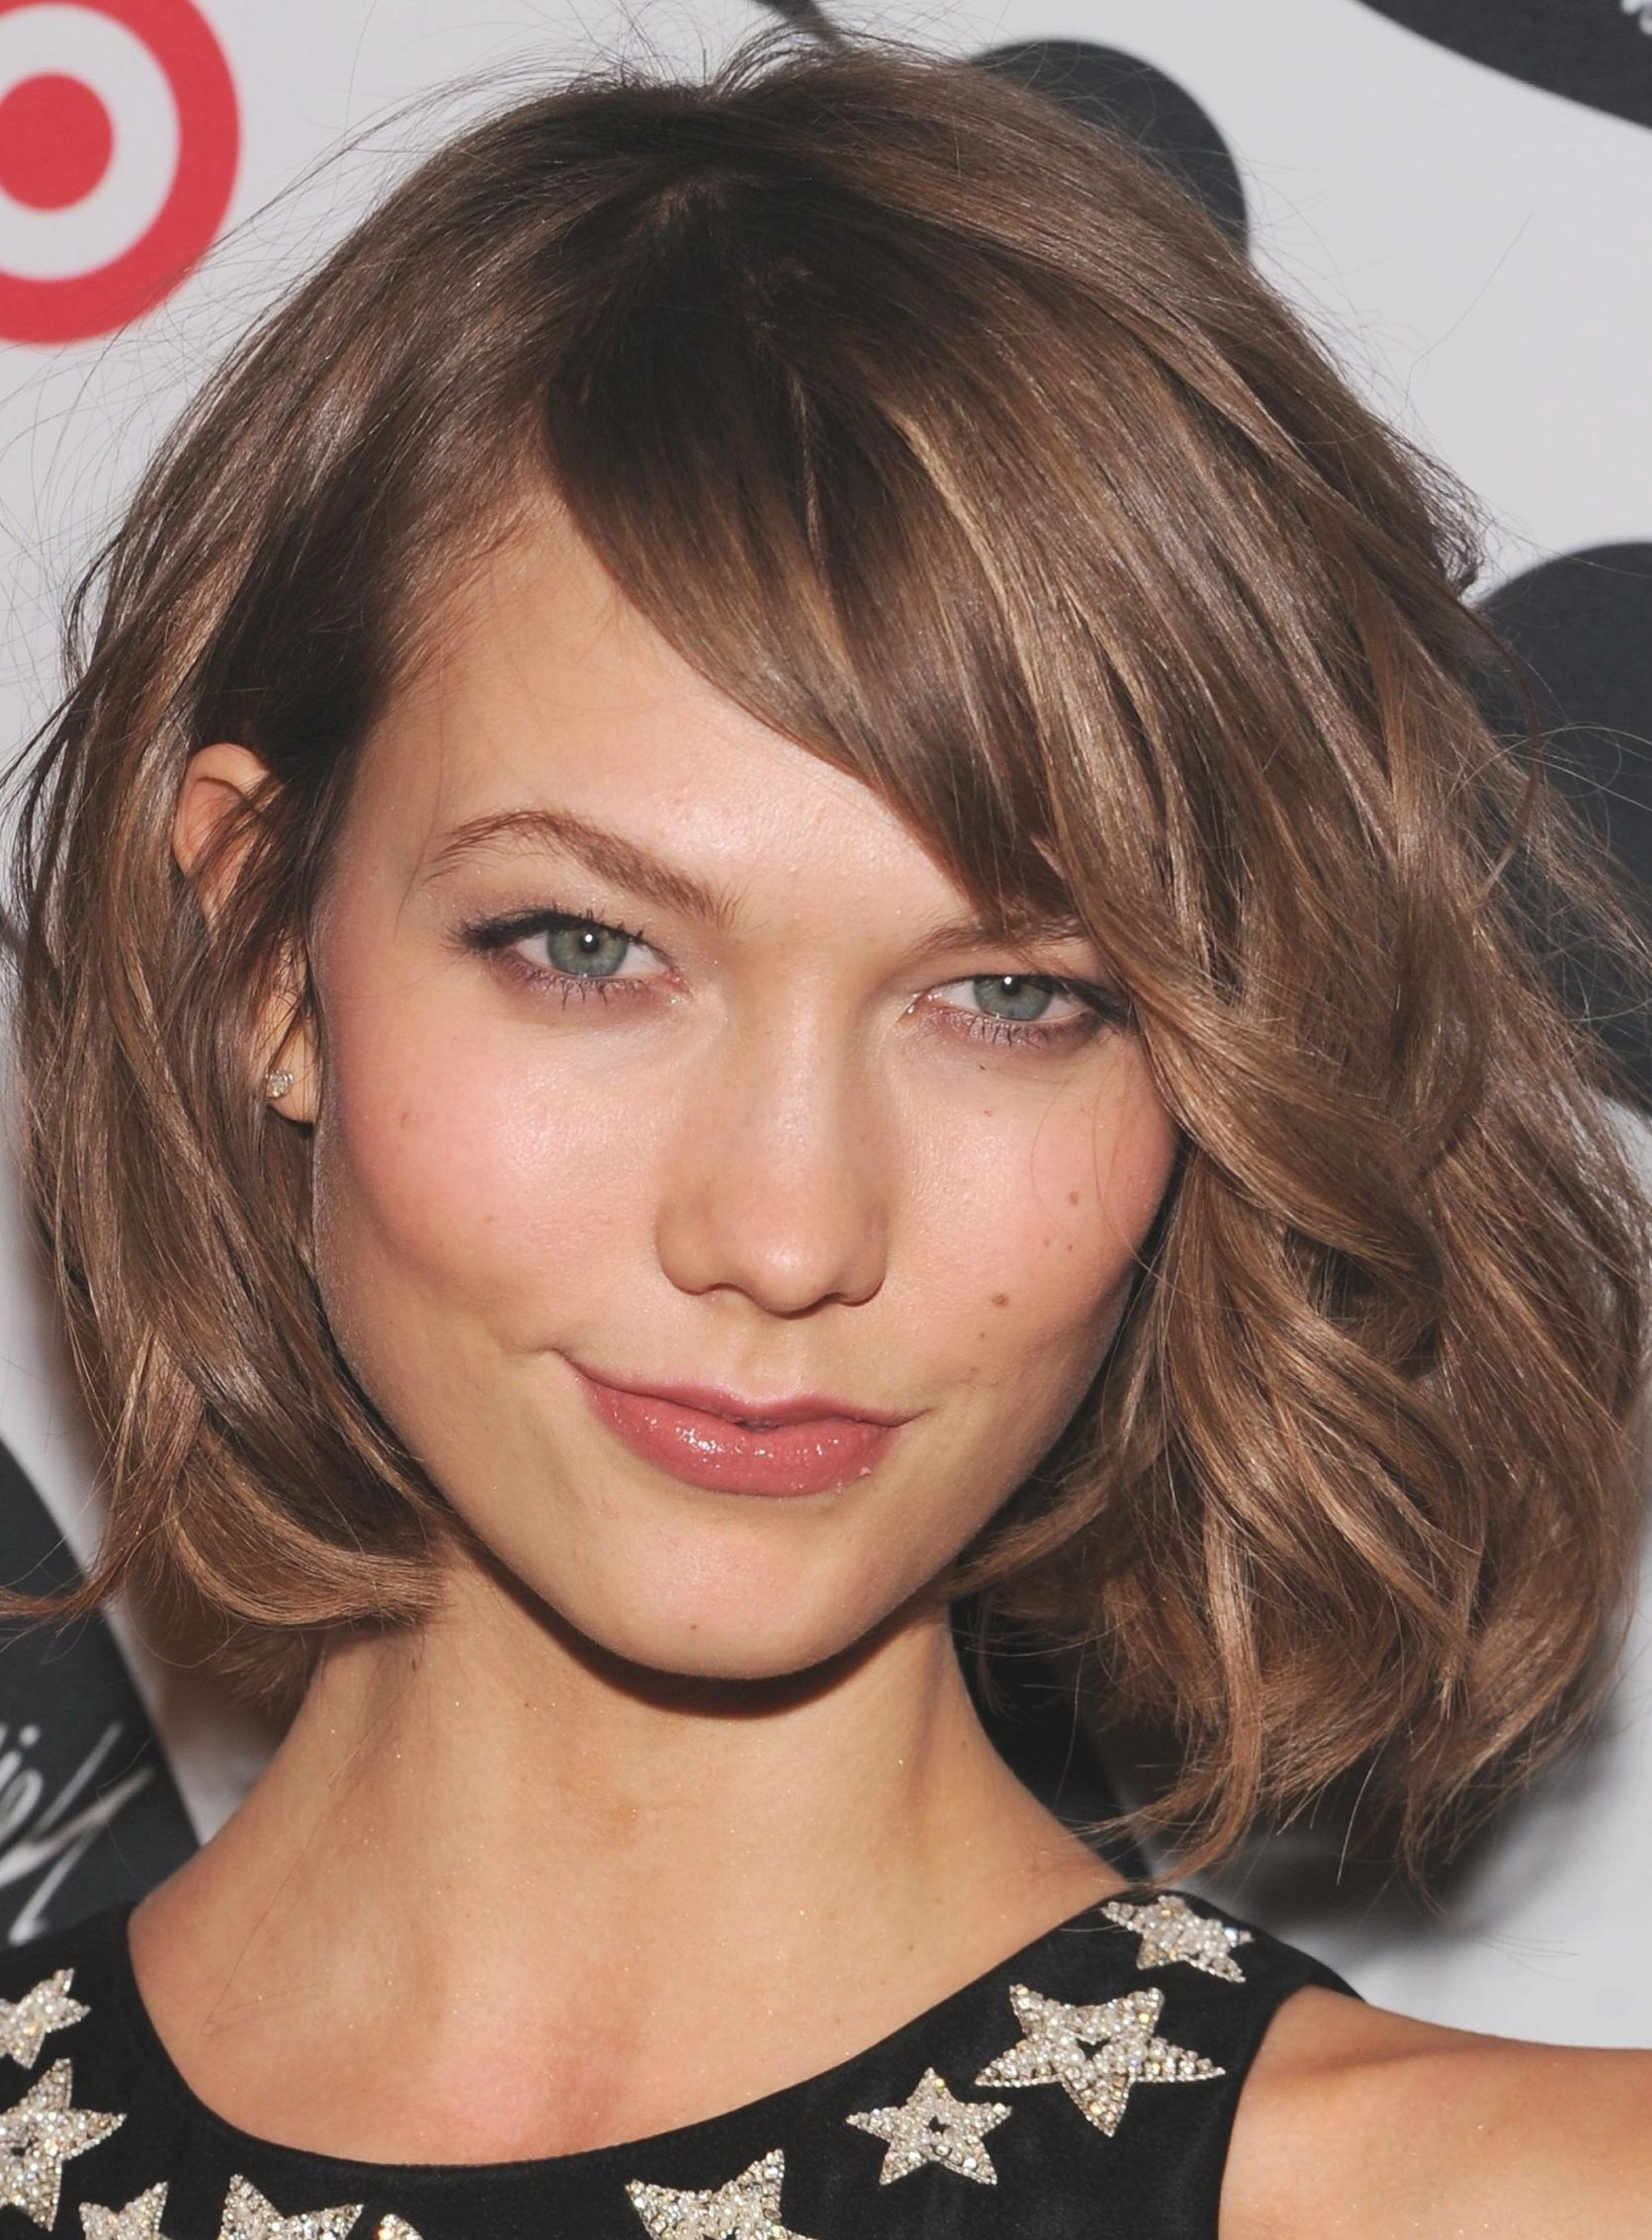 38 Short Layered Bob Haircuts With Side Swept Bangs That Make You Look Younger Easy Hairstyles Thick Hair Styles Short Layered Bob Haircuts Medium Length Hair Styles